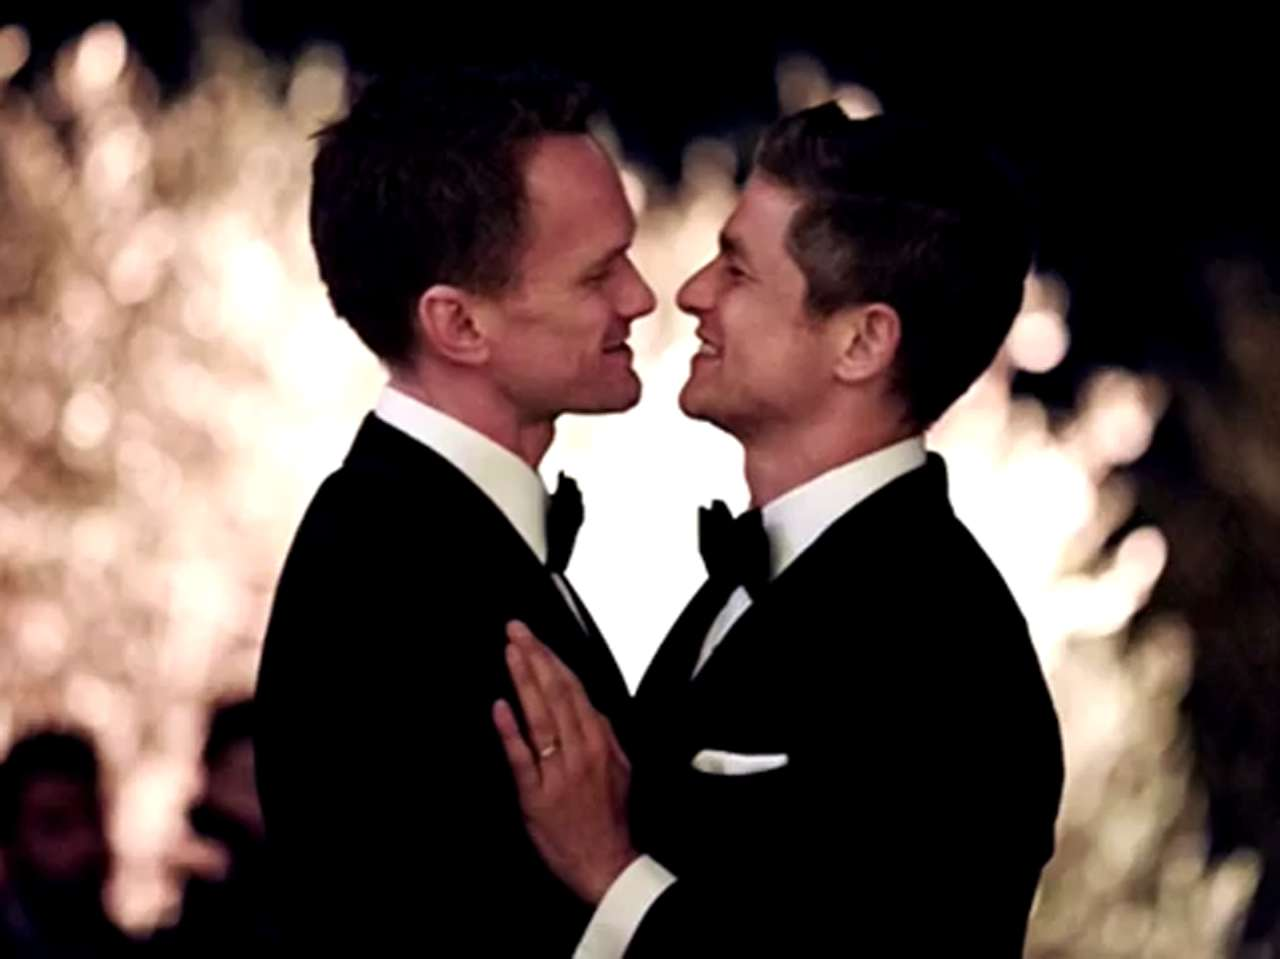 Boda de Neil Patrick Harris. Foto: YouTube.com